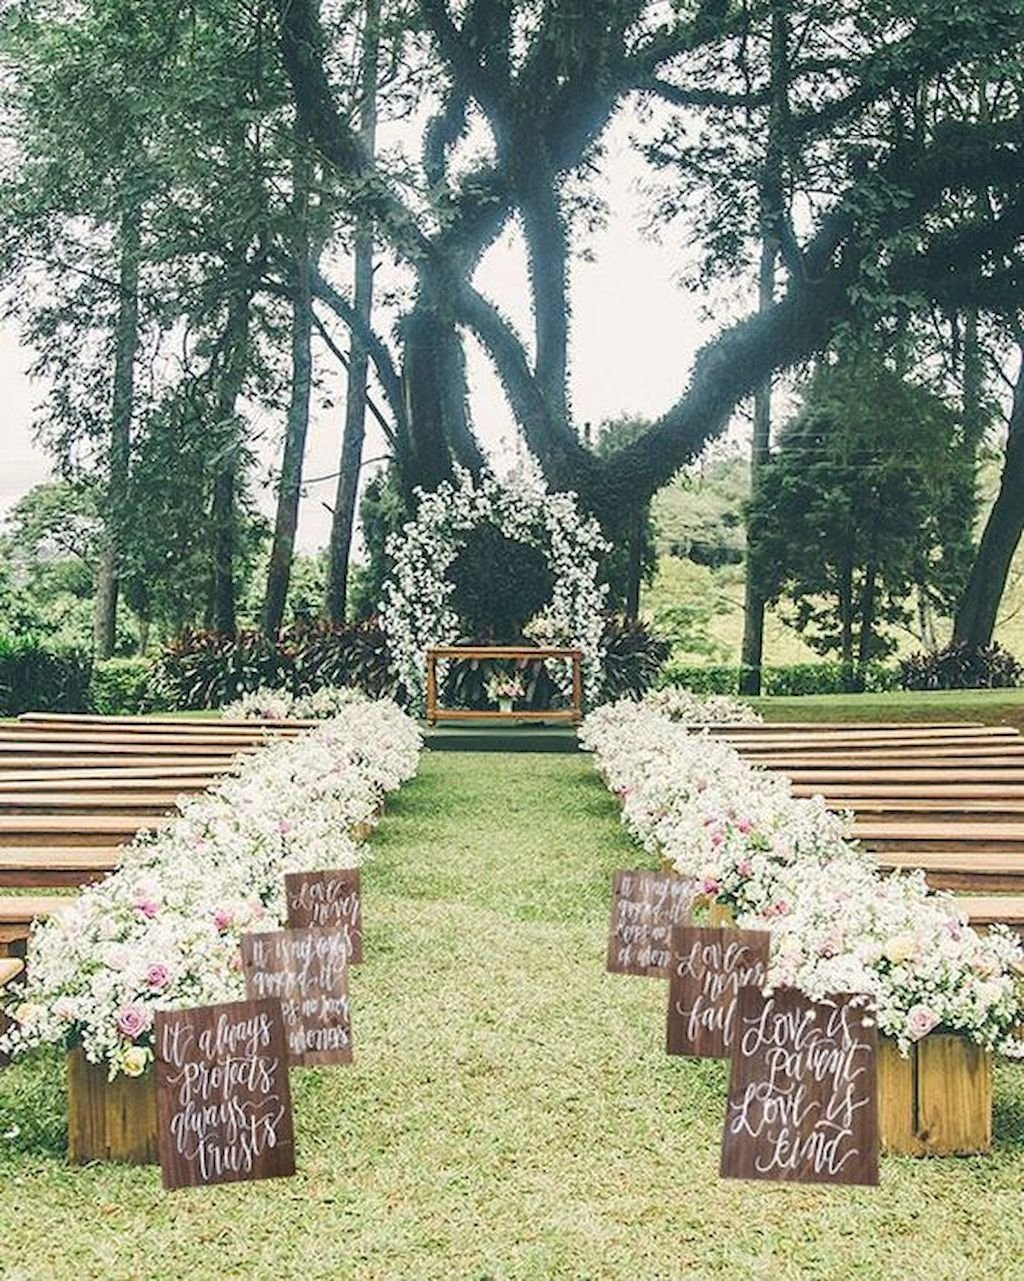 10 Awesome Outdoor Wedding Ideas For Fall 36 amazing fall outdoor wedding ideas on a budget bitecloth 2021